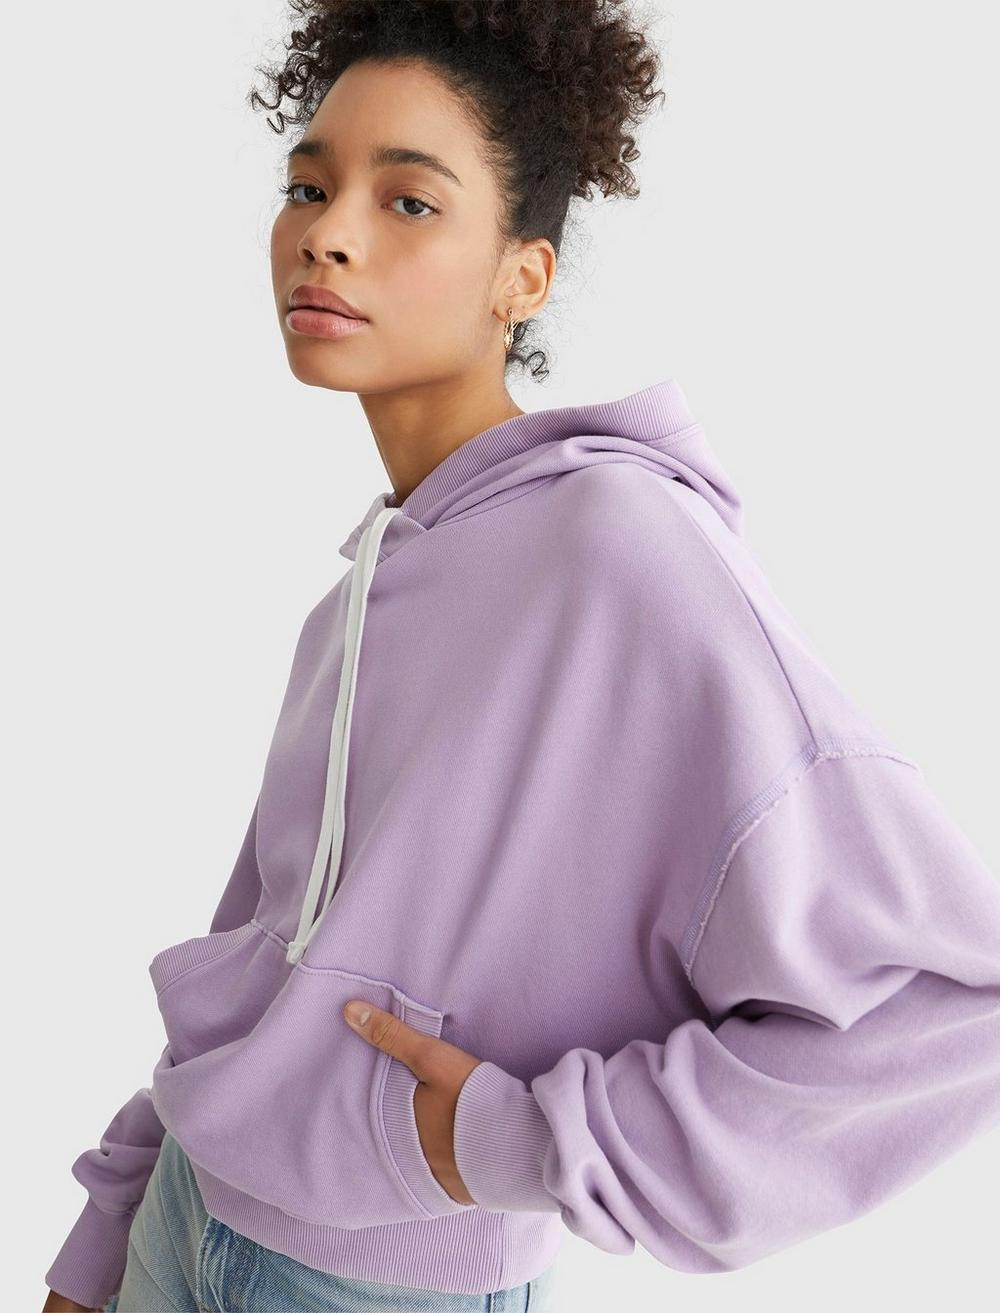 CHILL AT HOME HOODIE, image 6